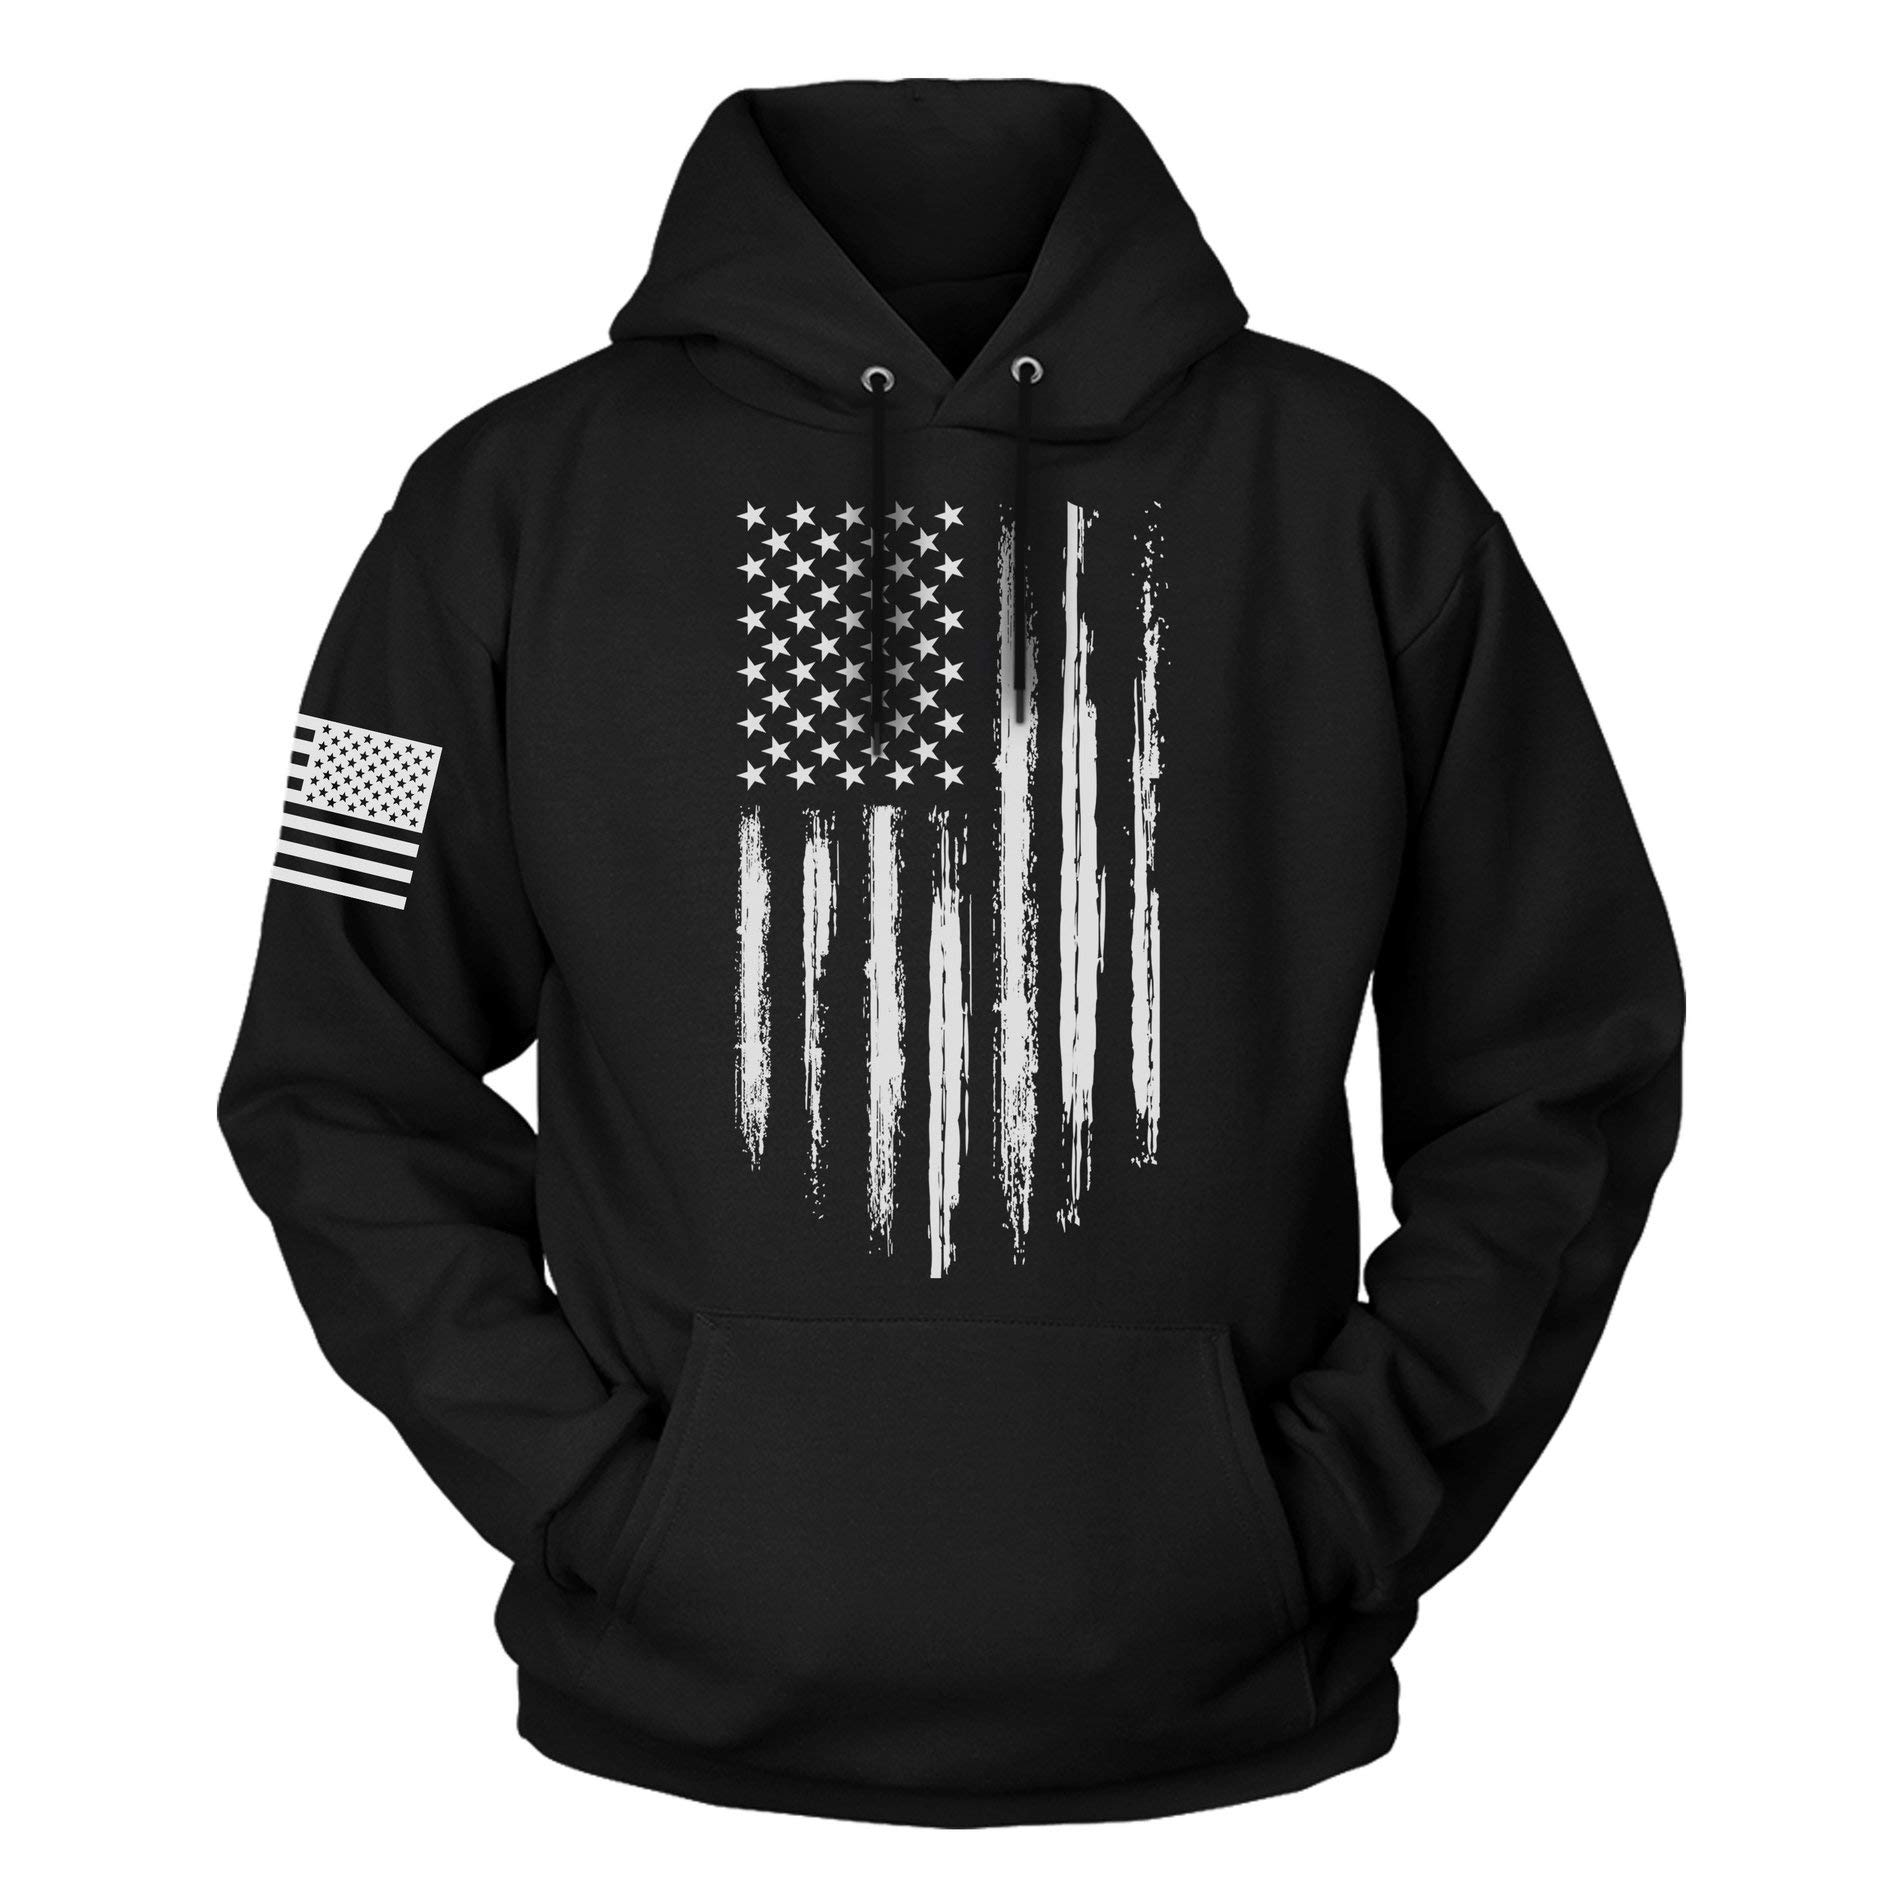 The Fighting Forces USA Sweatshirt Hoodie for Men or Women, American Flag Patriotic Jacket Sweater